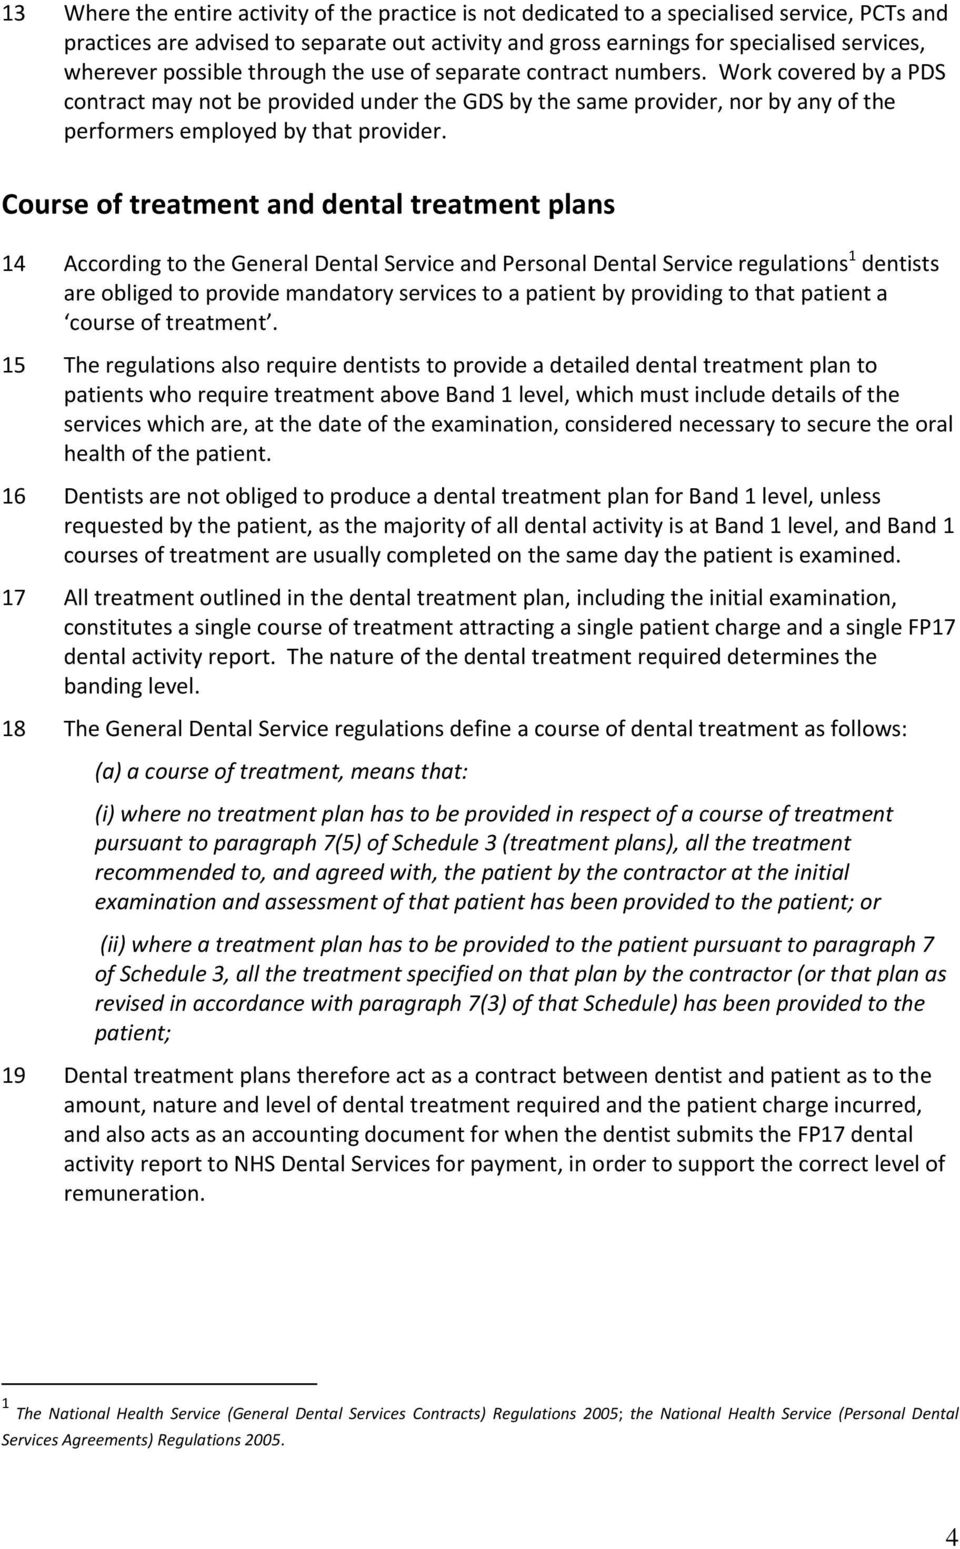 Course of treatment and dental treatment plans 14 According to the General Dental Service and Personal Dental Service regulations 1 dentists are obliged to provide mandatory services to a patient by